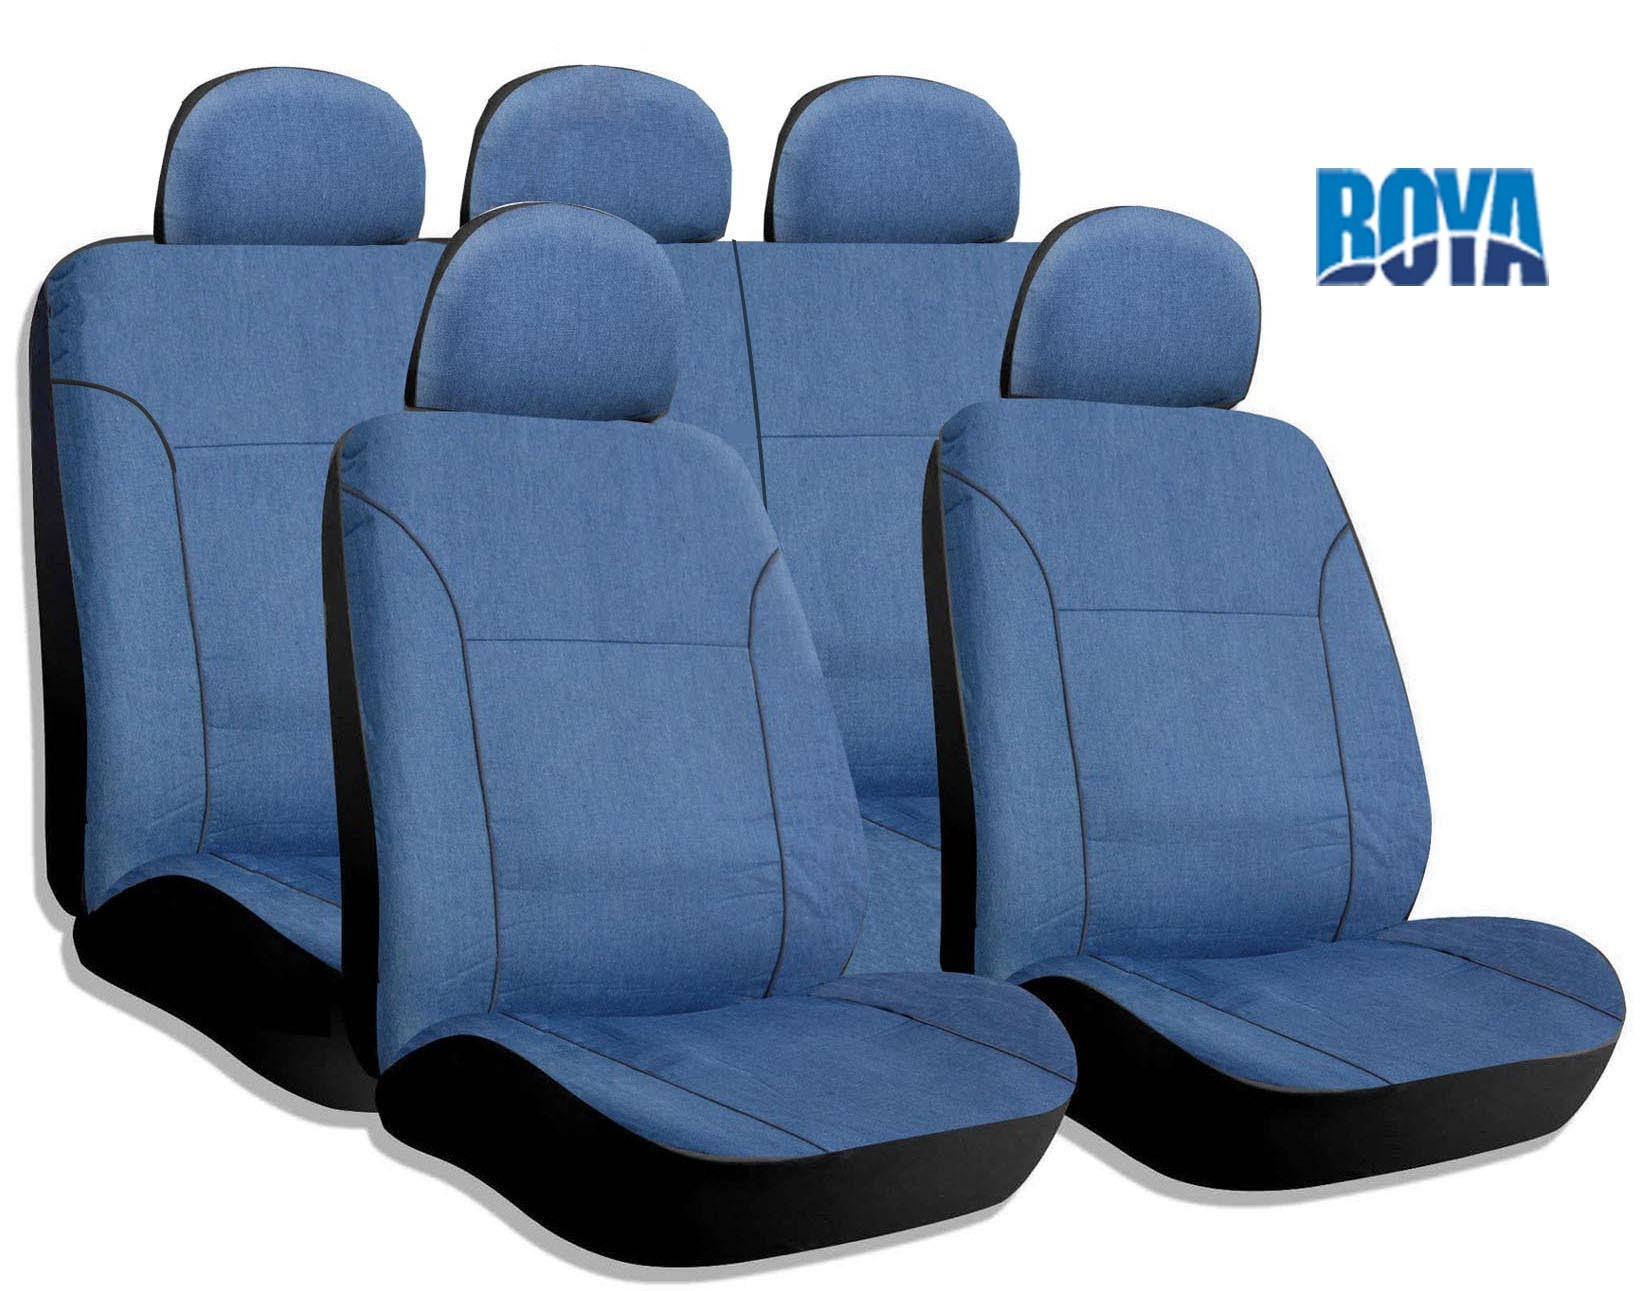 chair covers china bed bath and beyond polyester car seat cover byp 0001